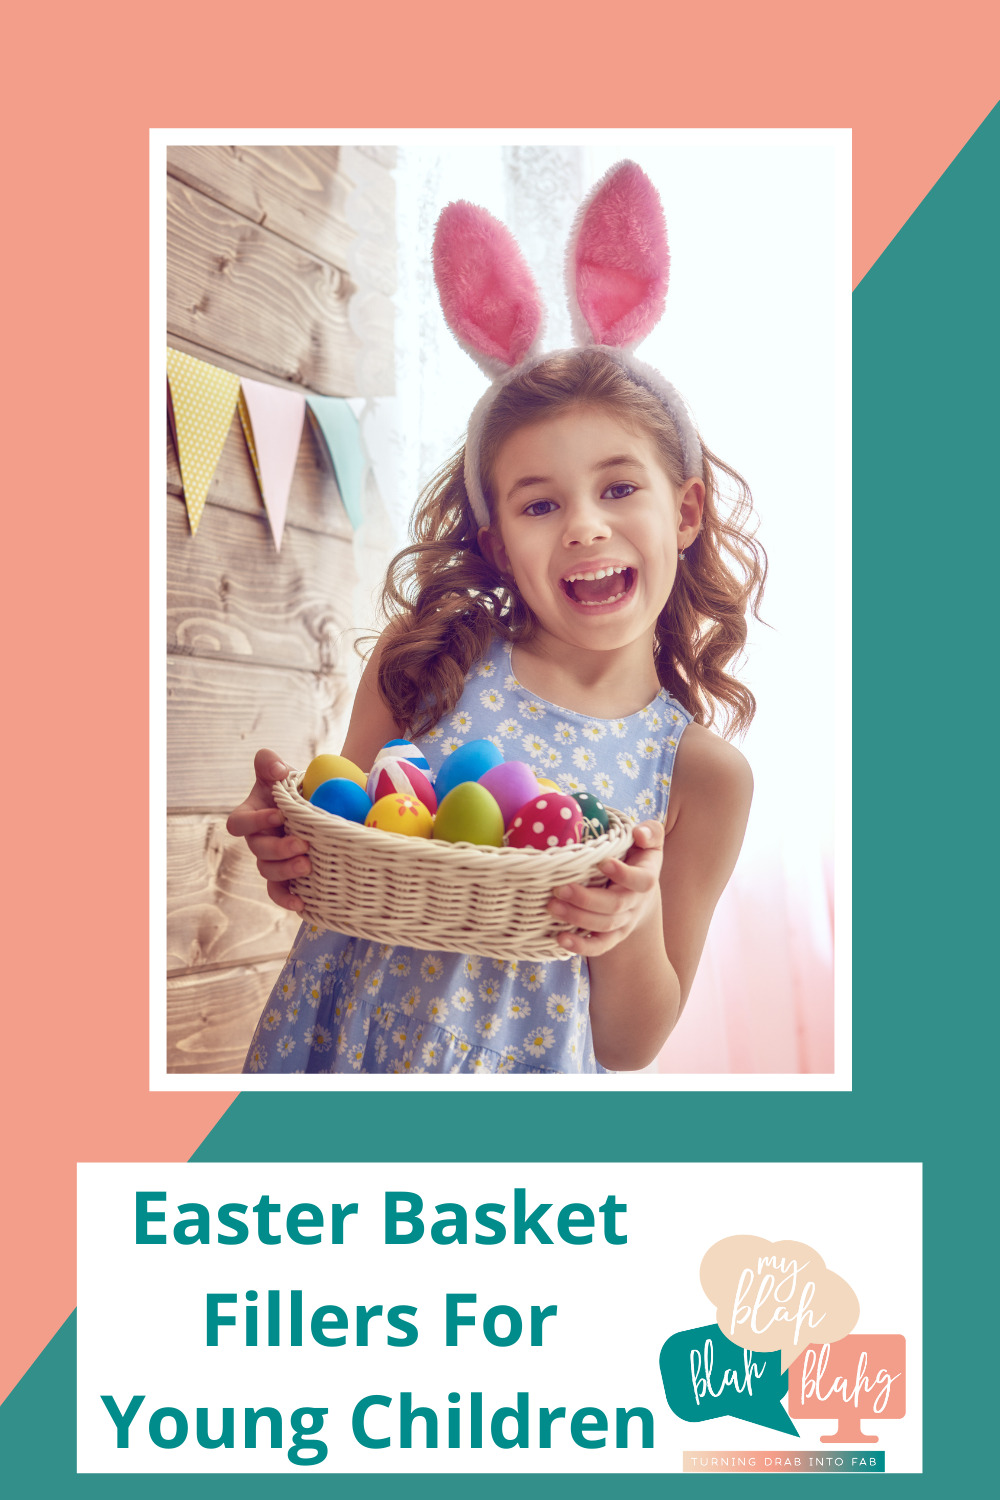 Myblahblahblahg.com has the best ideas to make your life easier and less stressful! Find the best tips for year-round fun! Get ready for Easter with fun baskets for your kids. These Easter basket fillers are perfect for toddlers and young kids!